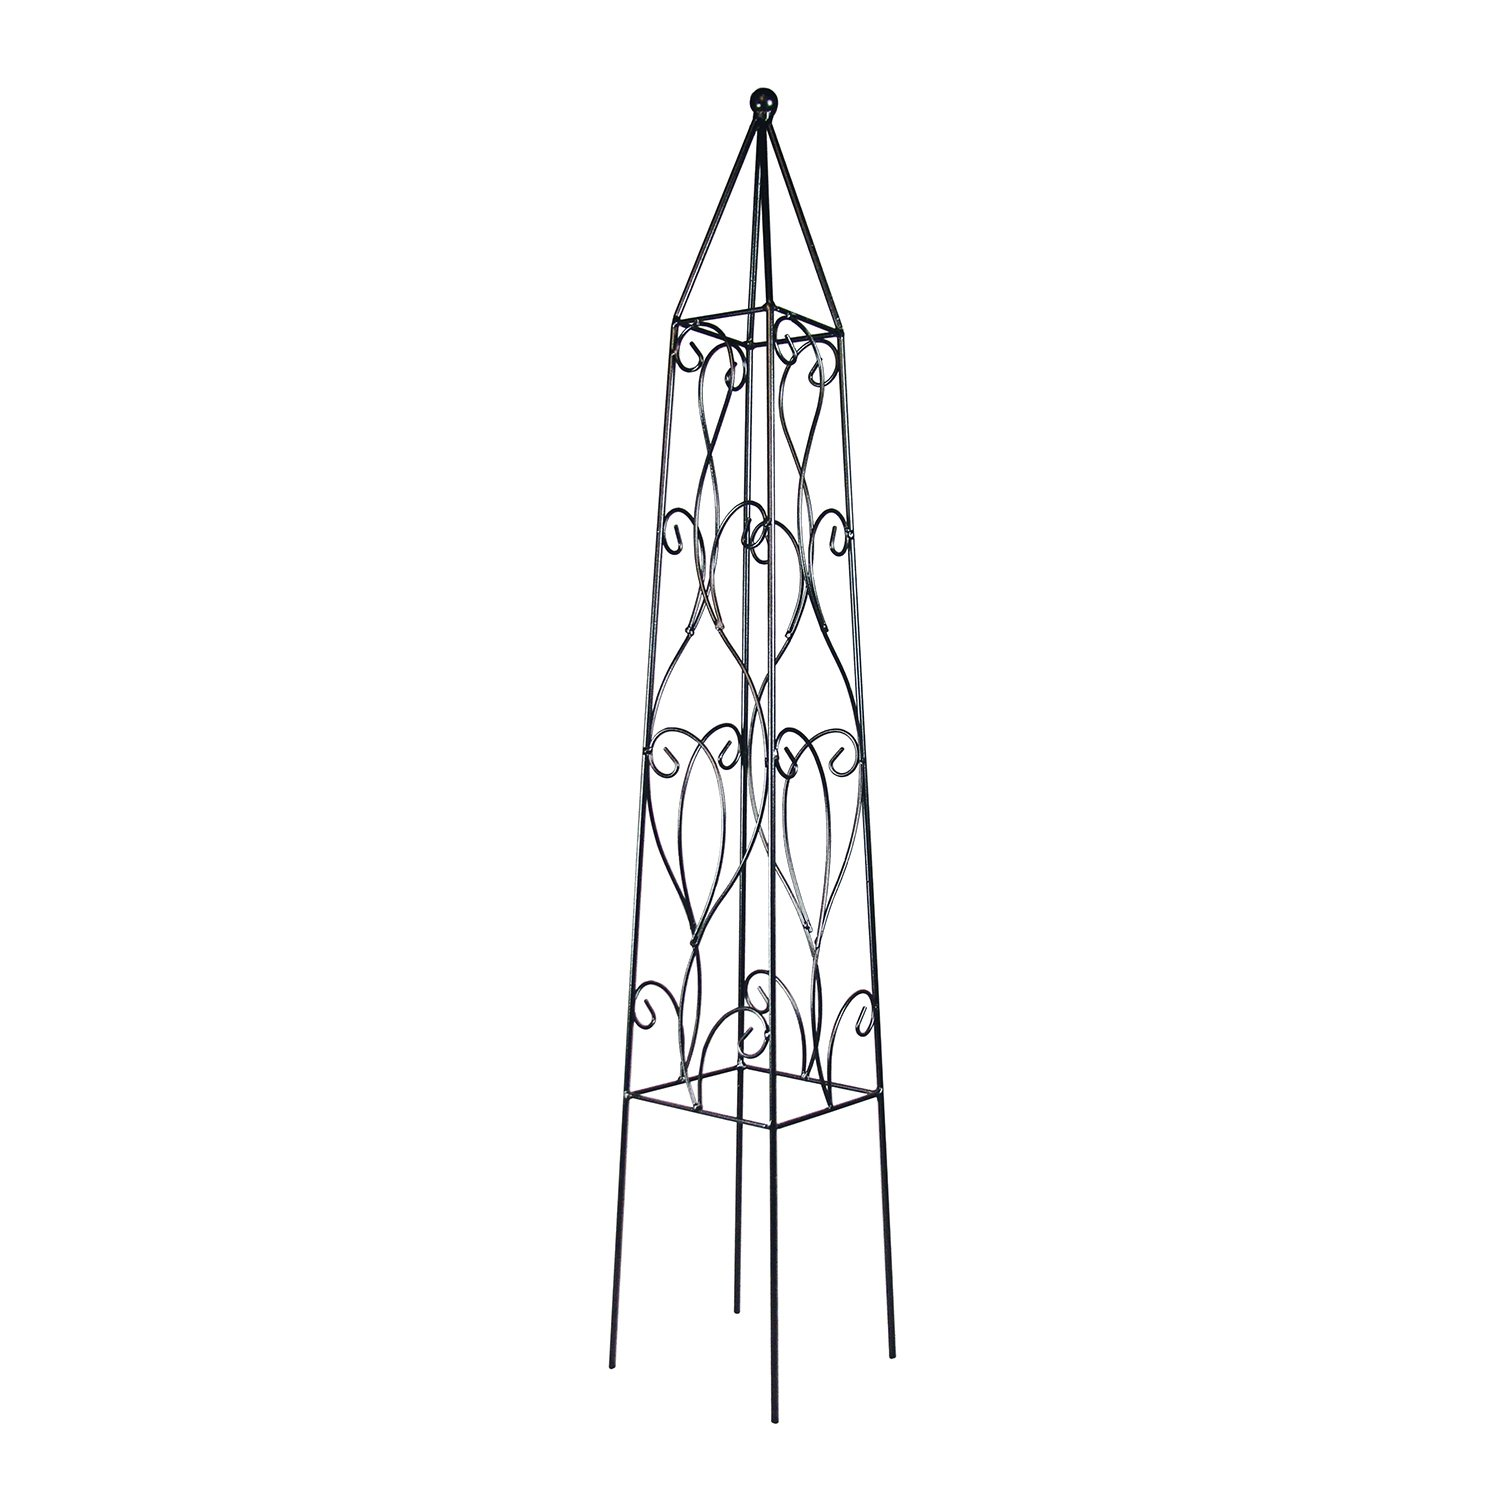 "Border Concepts 72862 Solid Steel Wisteria Obelisk, Black, 36"" by Obelisks"